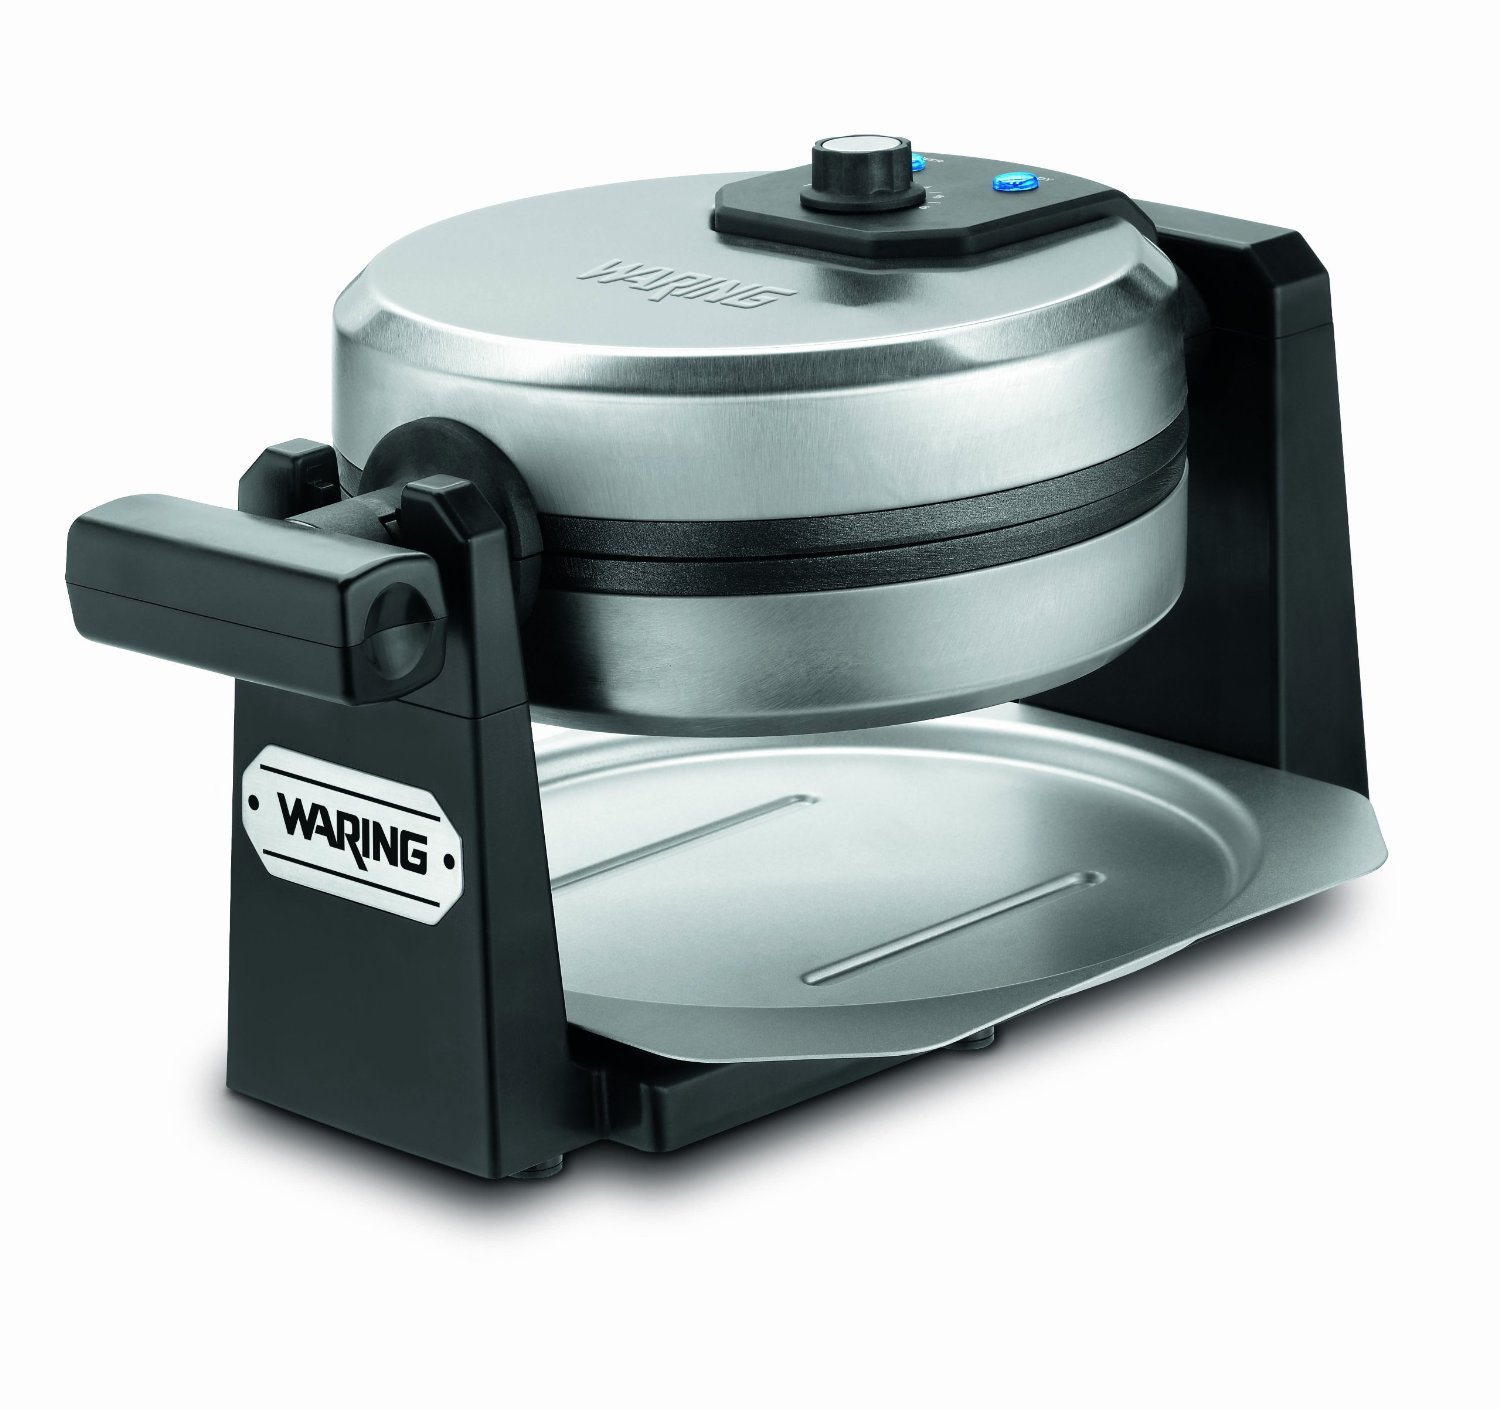 Waring Pro Waffle Maker with Deep 1-Inch Belgian Waffle Grids and Rotary Browning Control Knob, Blue LED Indicator Lights, Removable Drip Tray, Bonus FREE Measuring Cup Included, Stainless Steel/Black Design by Waring